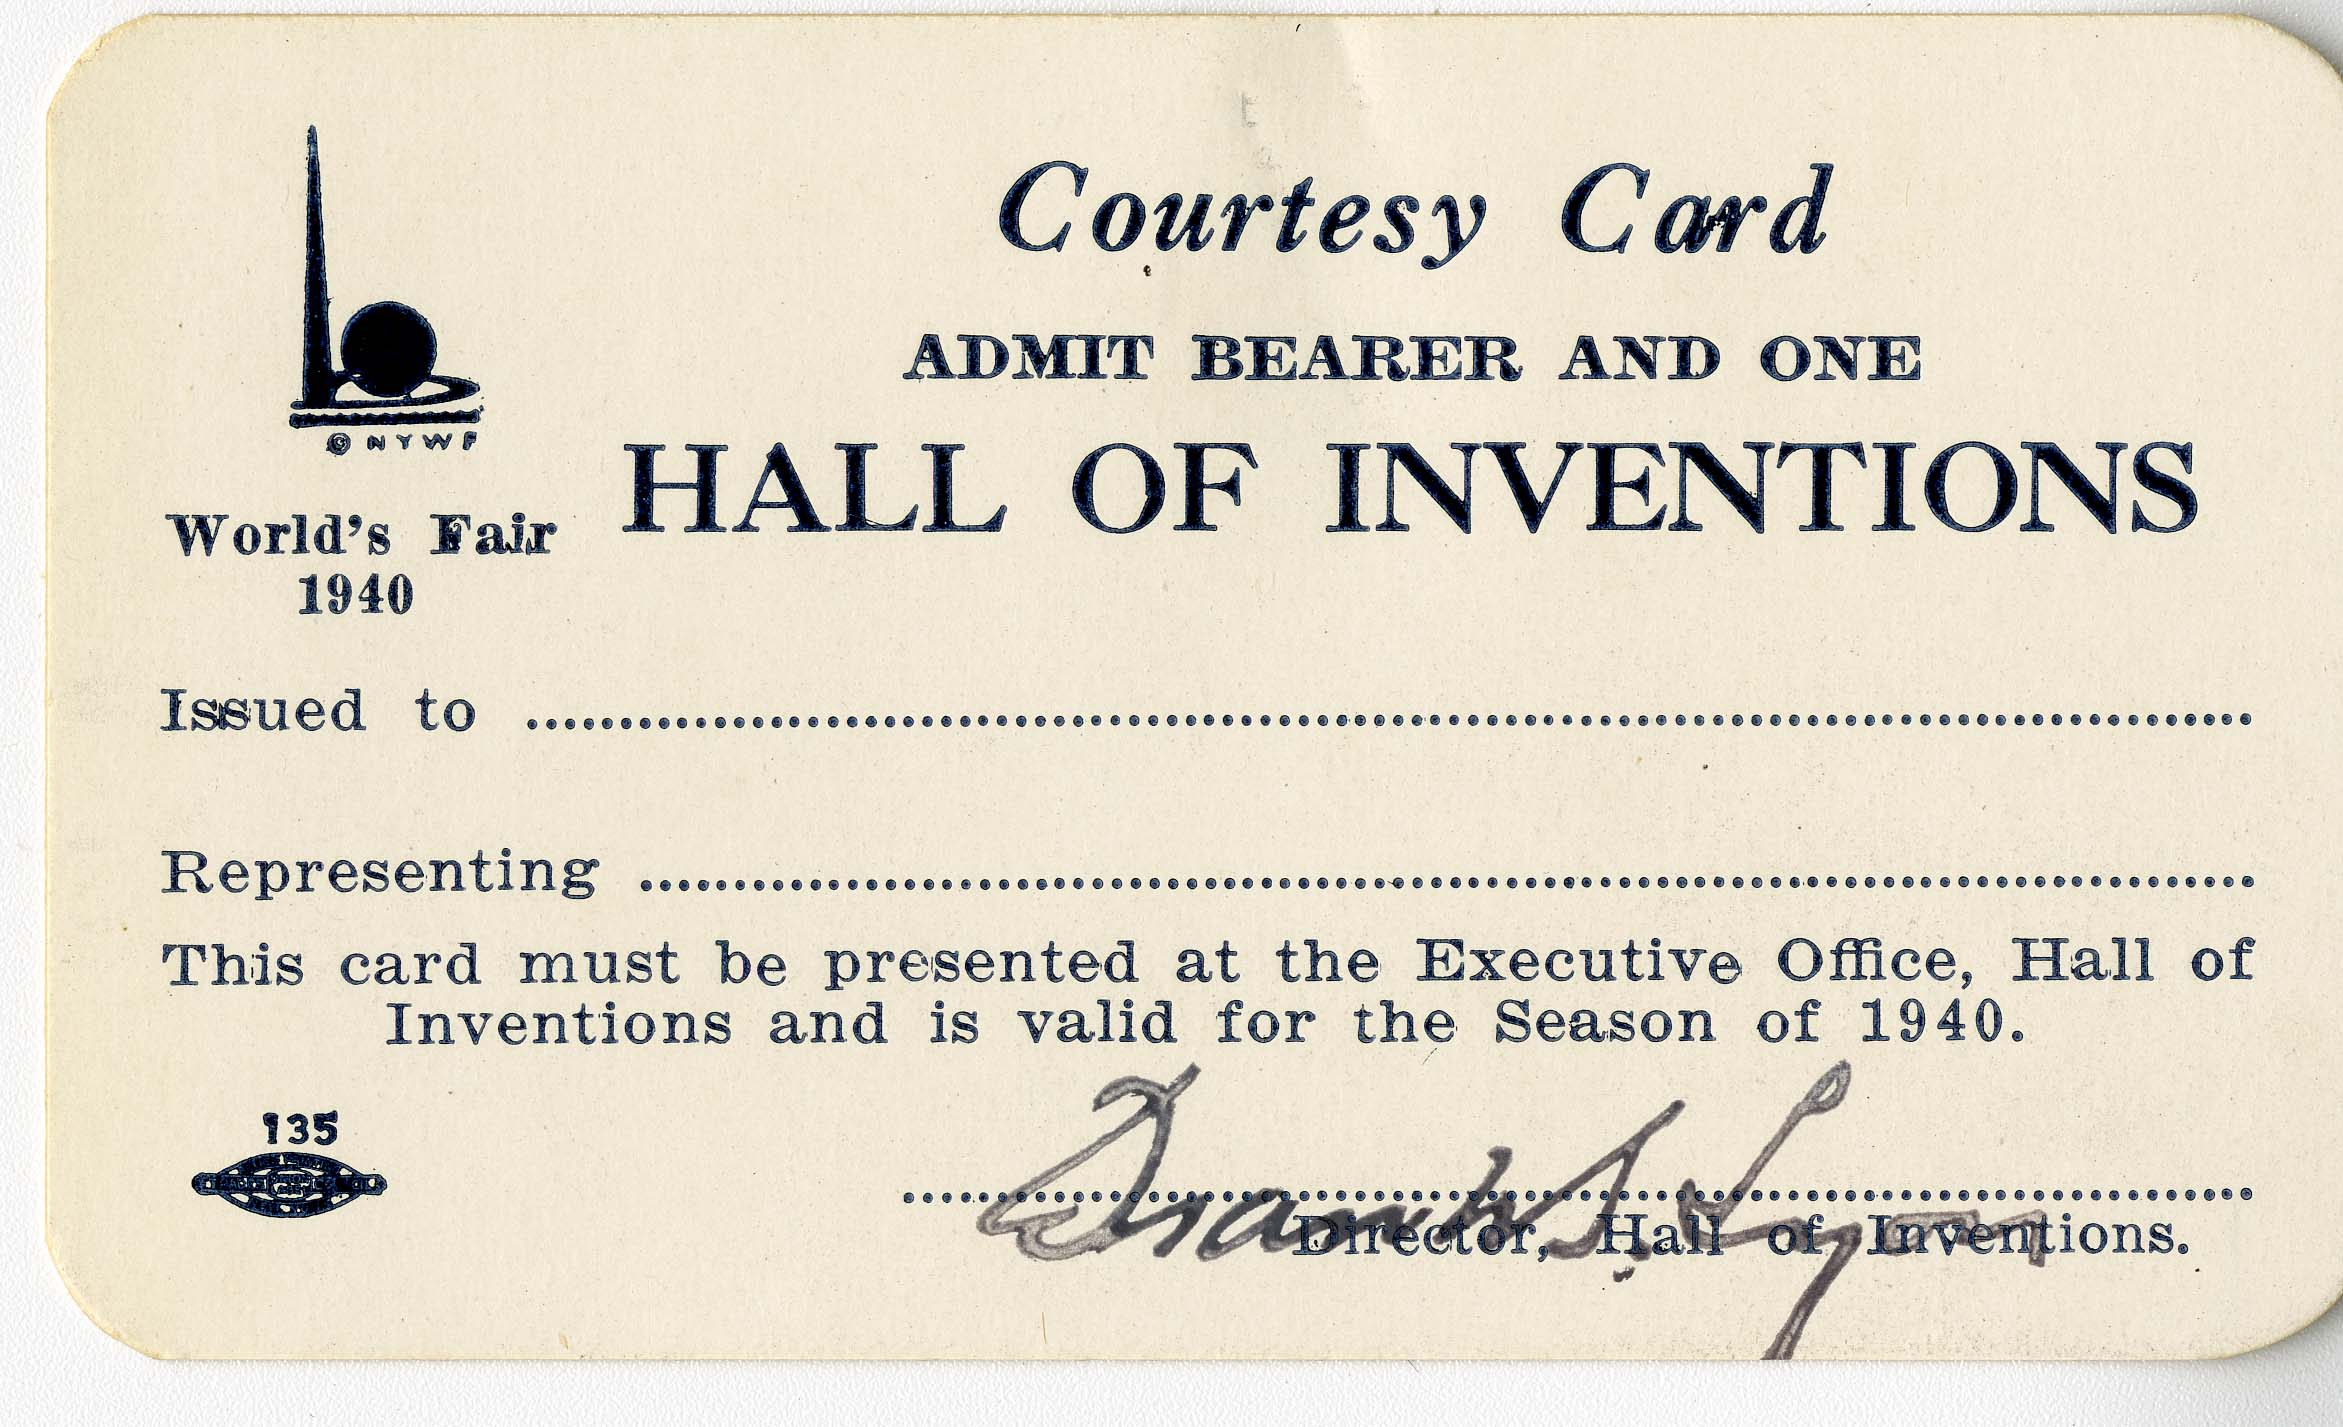 Courtesy card, Hall of Inventions, New York World's Fair, 1940 (AC0560-0000047)